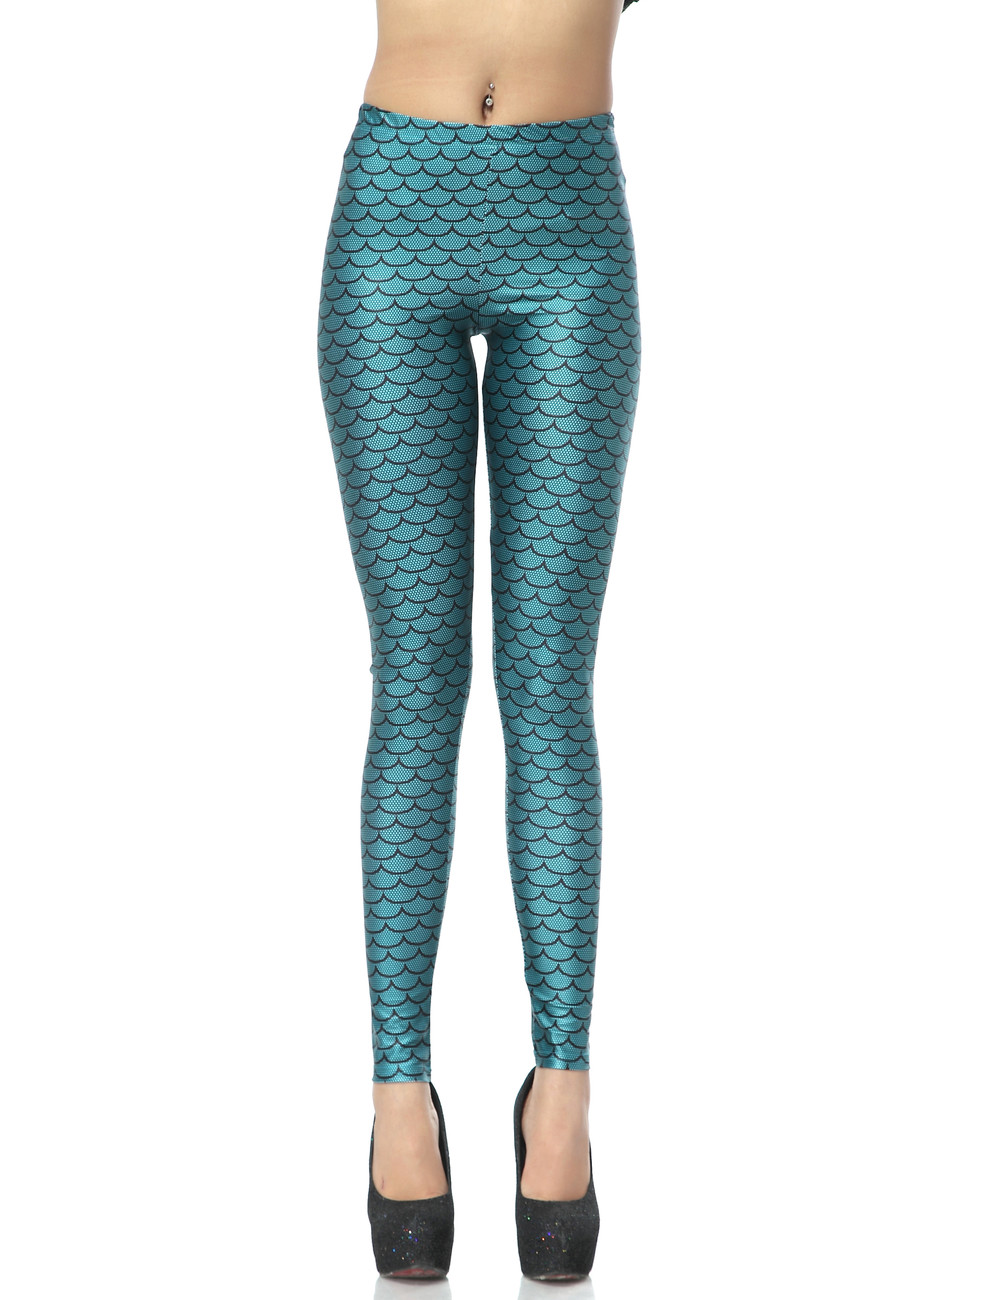 women enchanted mermaid fish scale printed tights leggings